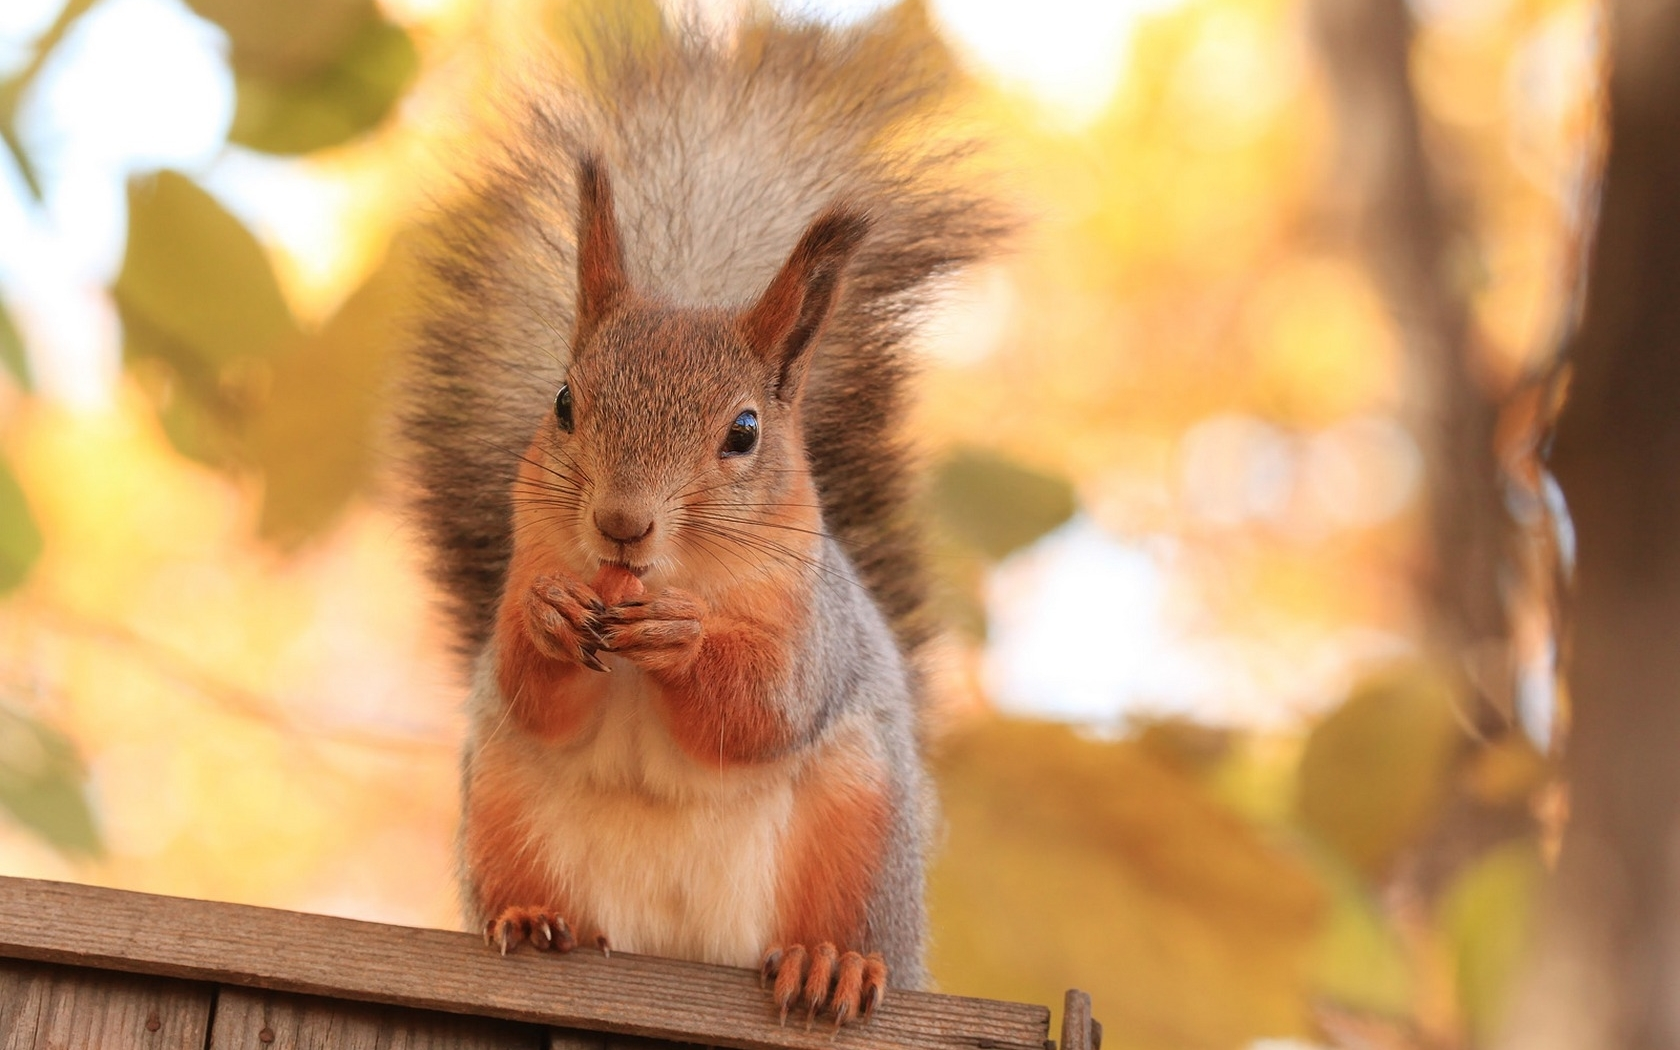 44578 download wallpaper Animals, Squirrel screensavers and pictures for free